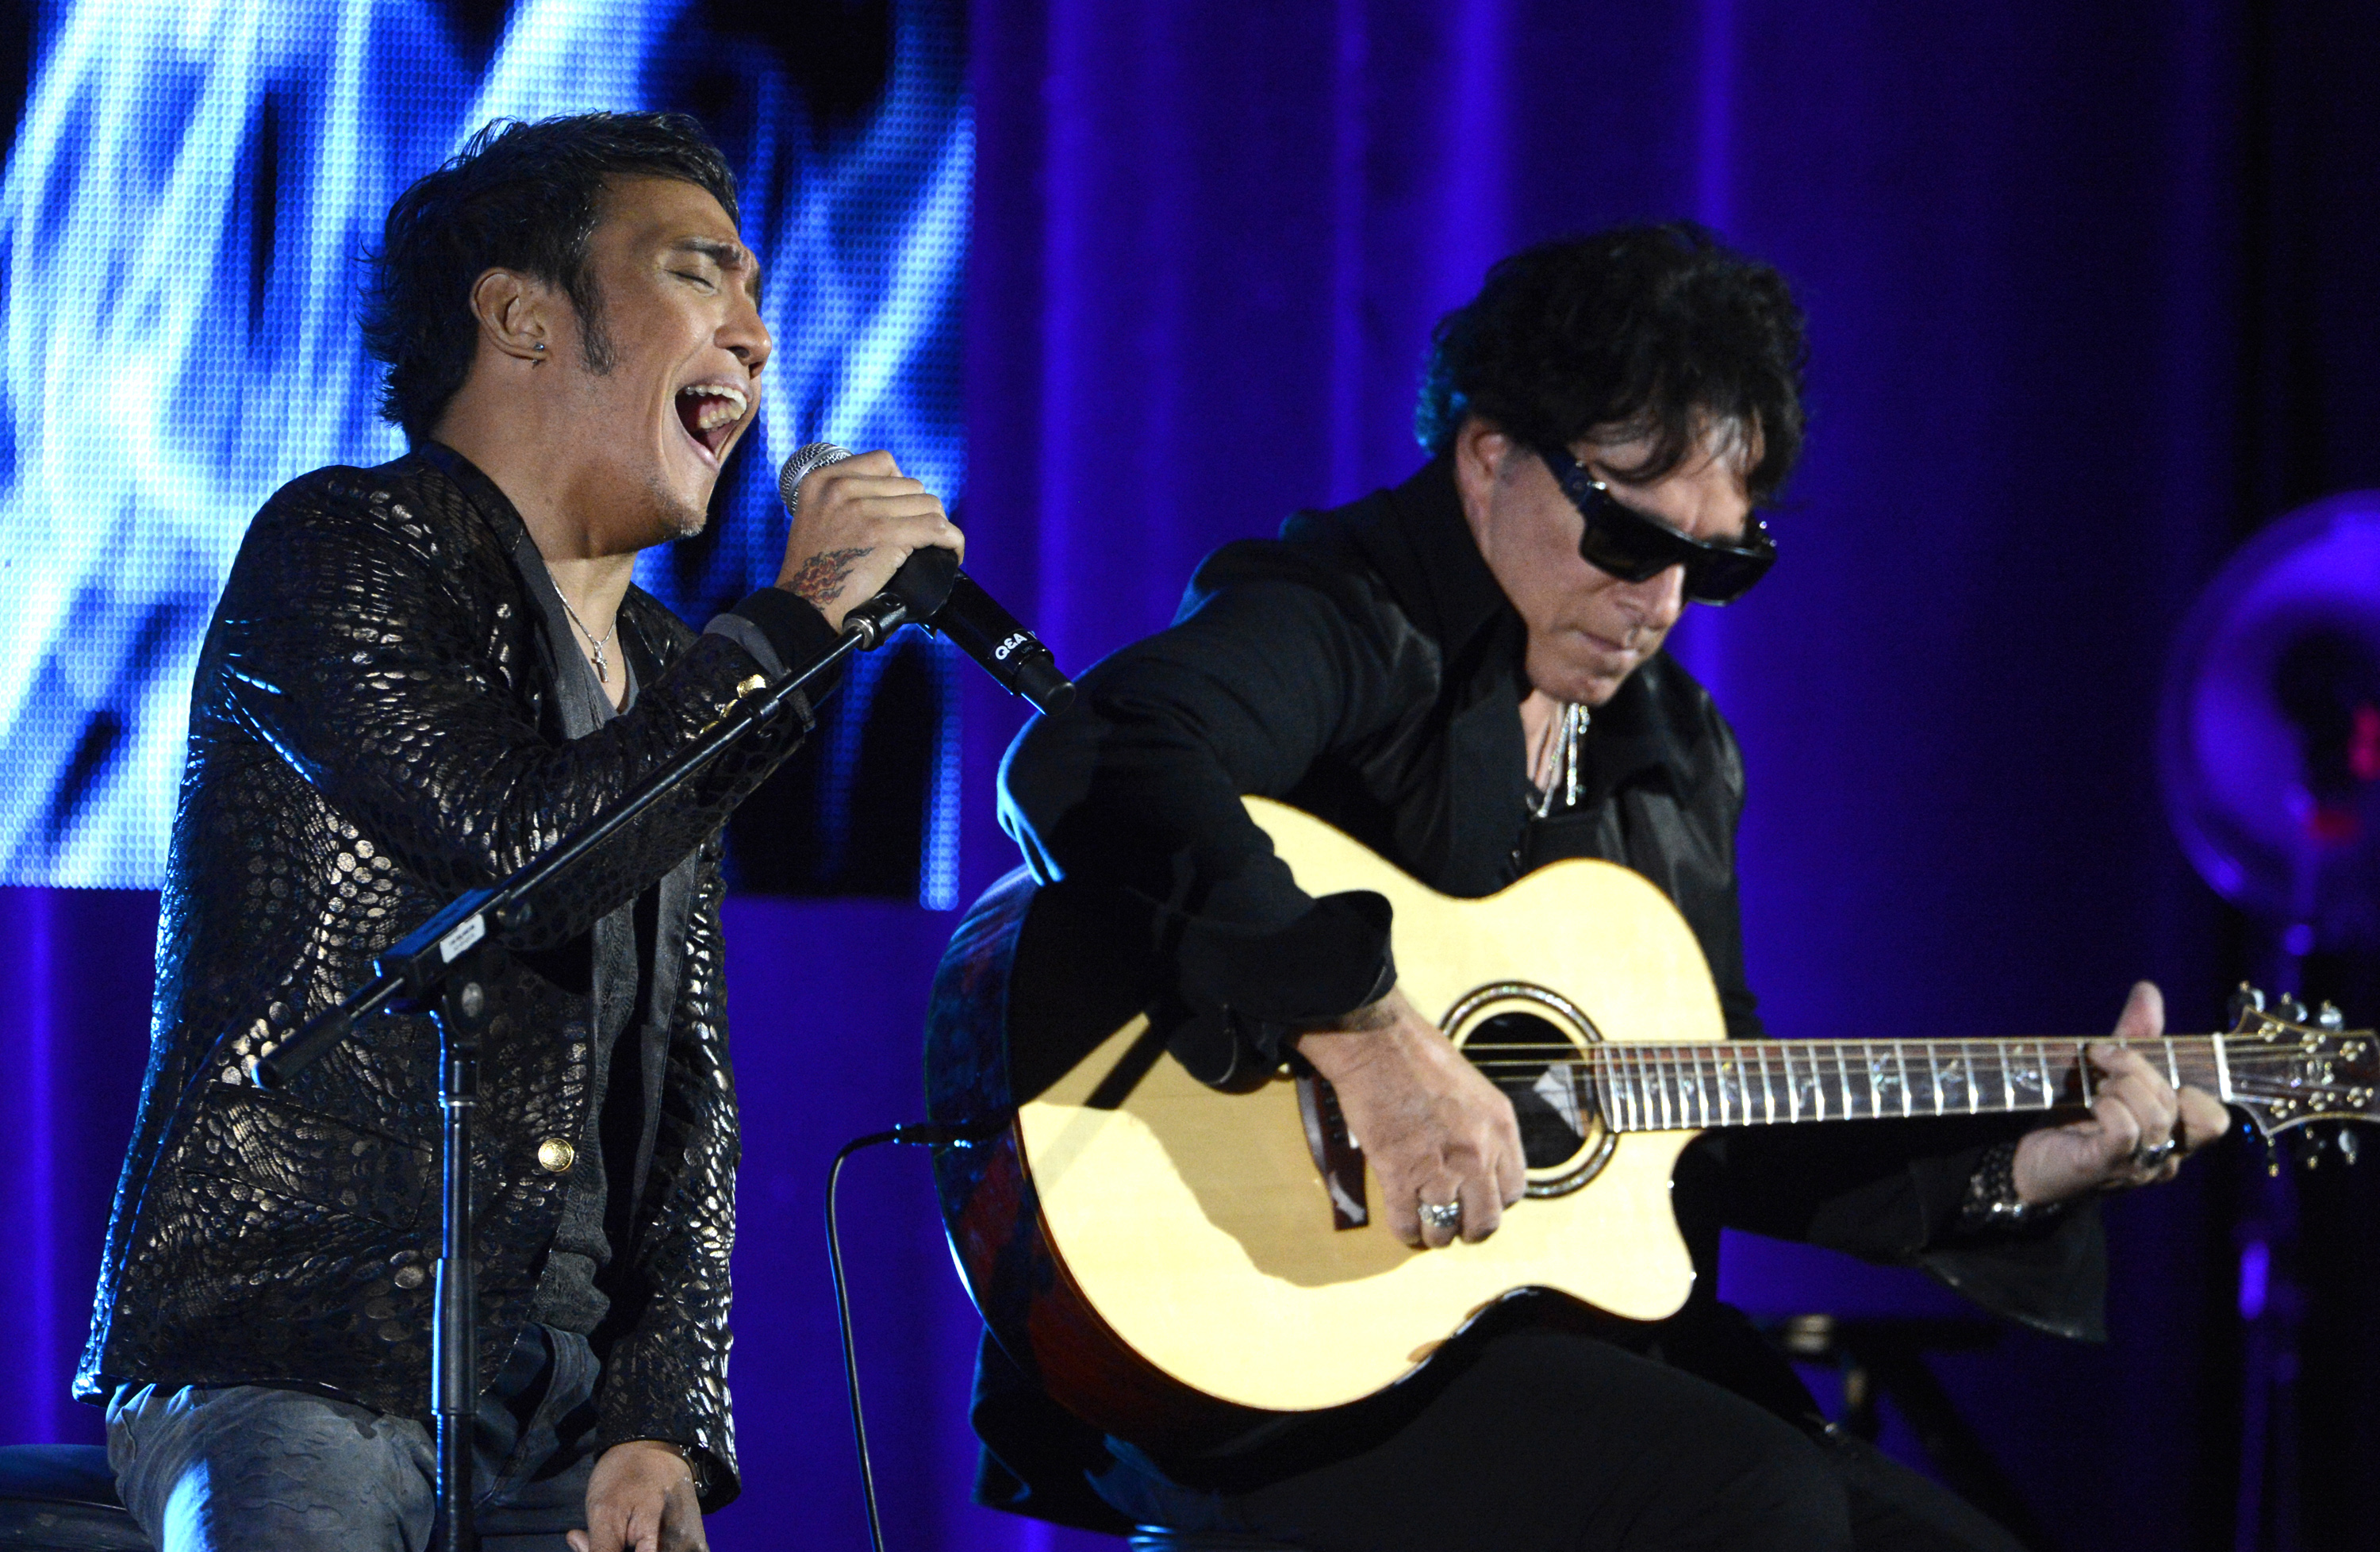 Arnel Pineda, left, and Neal Schon of rock band Journey perform during the PBS sessions at the Television Critics Association summer press tour in Beverly Hills, Calif., on August 6, 2013